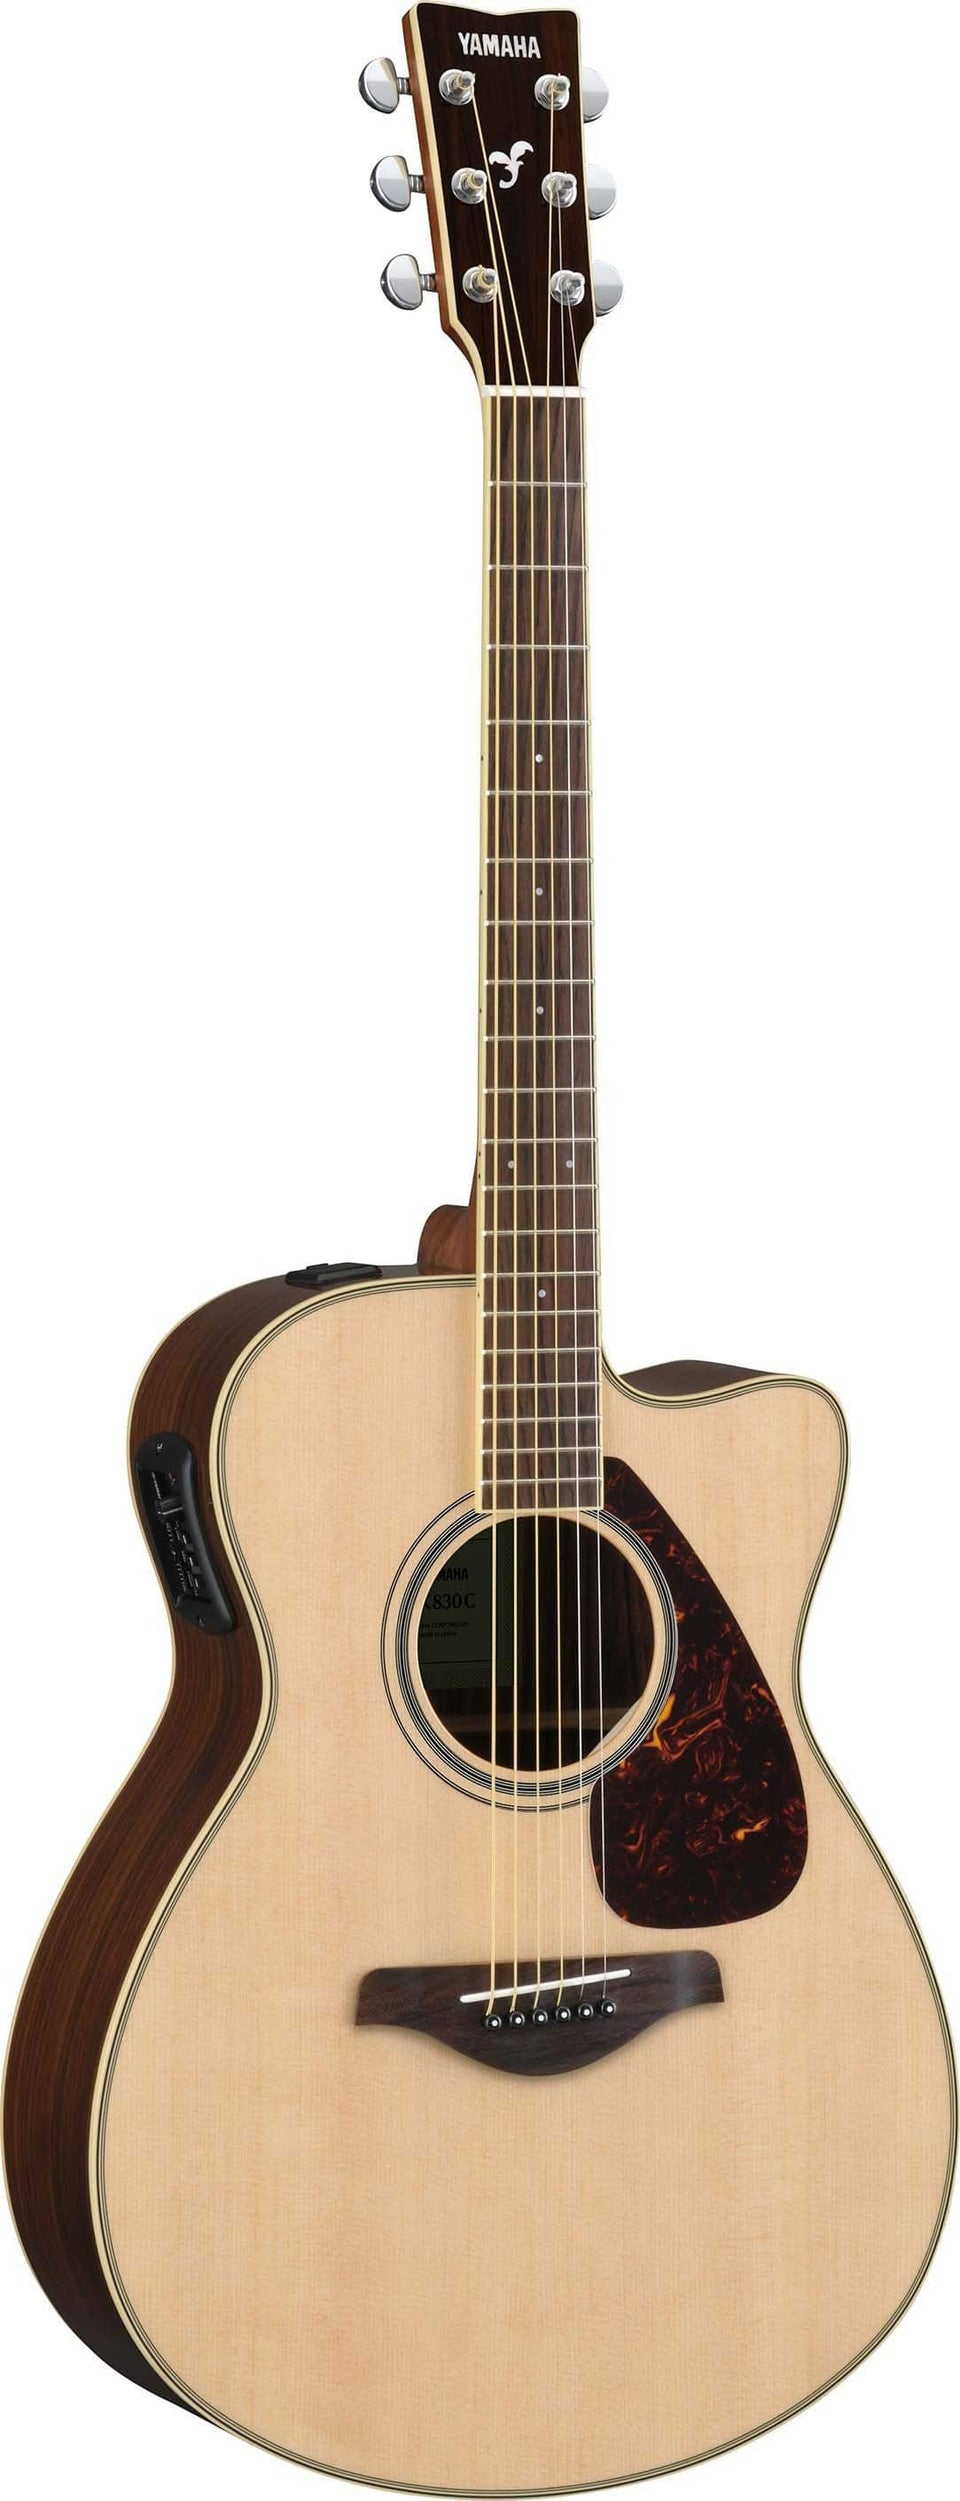 Yamaha FSX830C Small Body Acoustic Electric Guitar